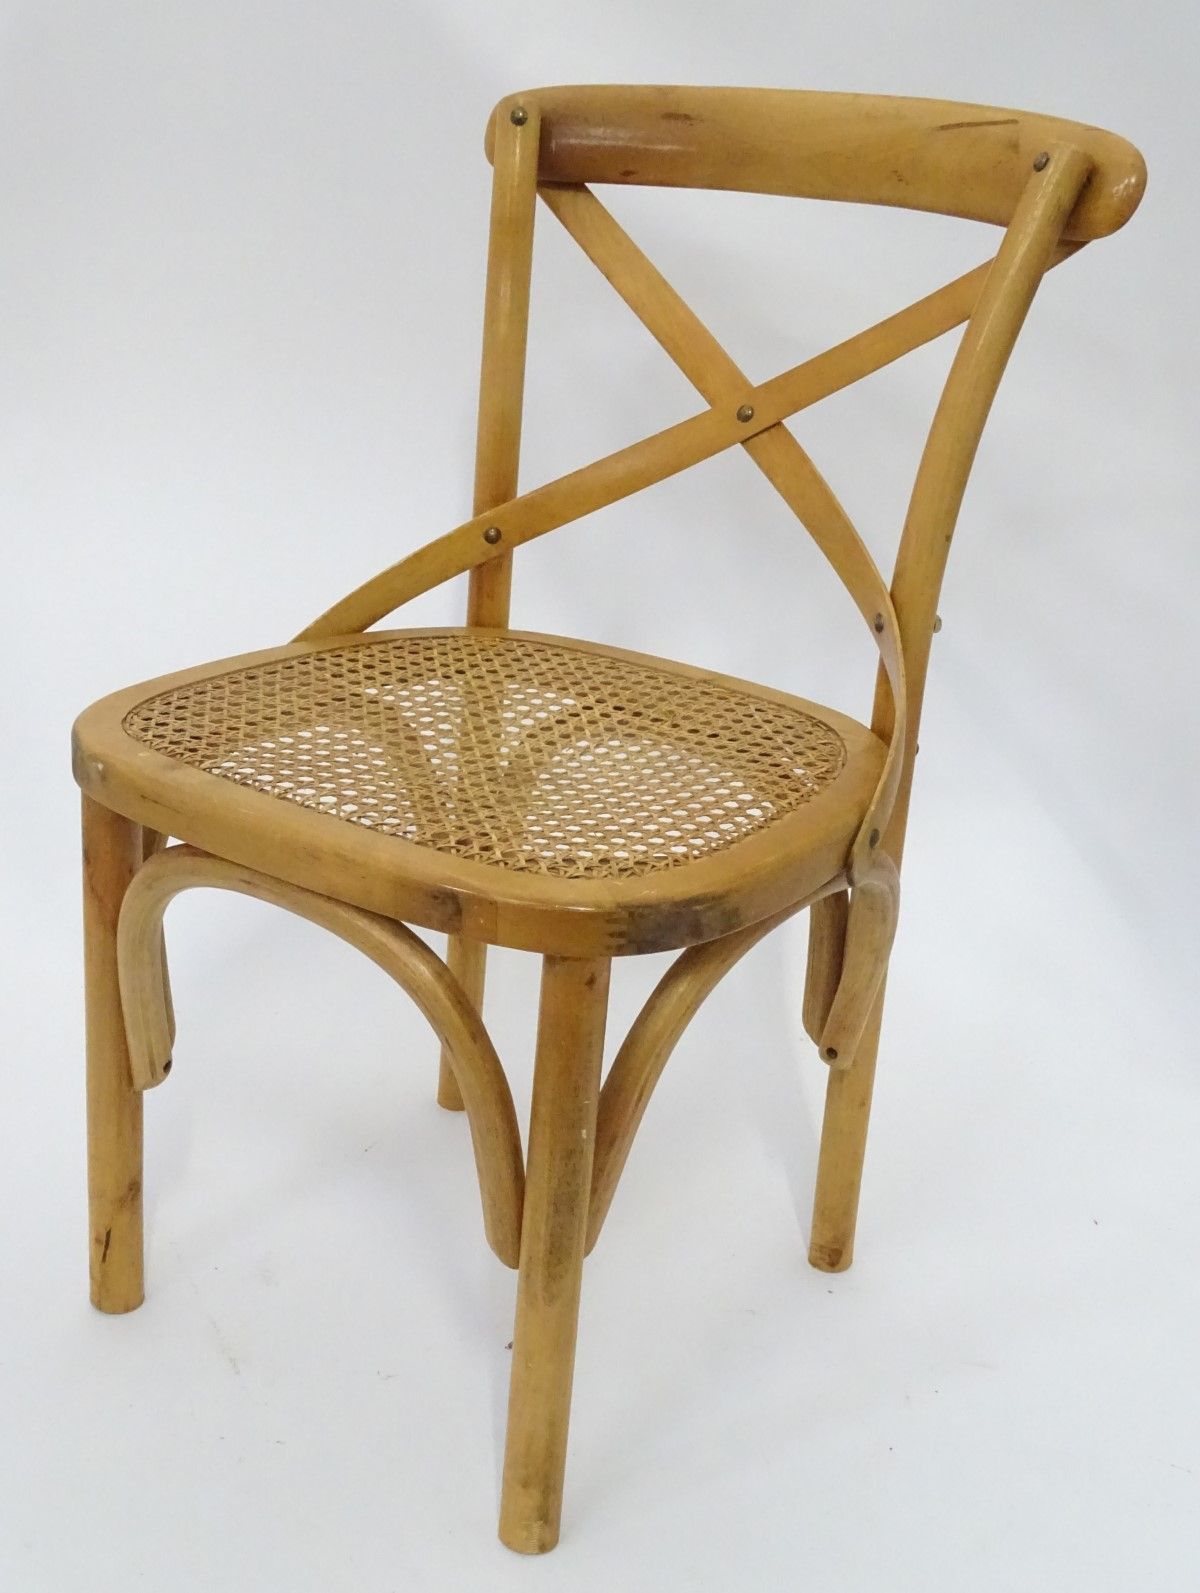 Lot 34 - A rush seated chair CONDITION: Please Note - we do not make reference to the